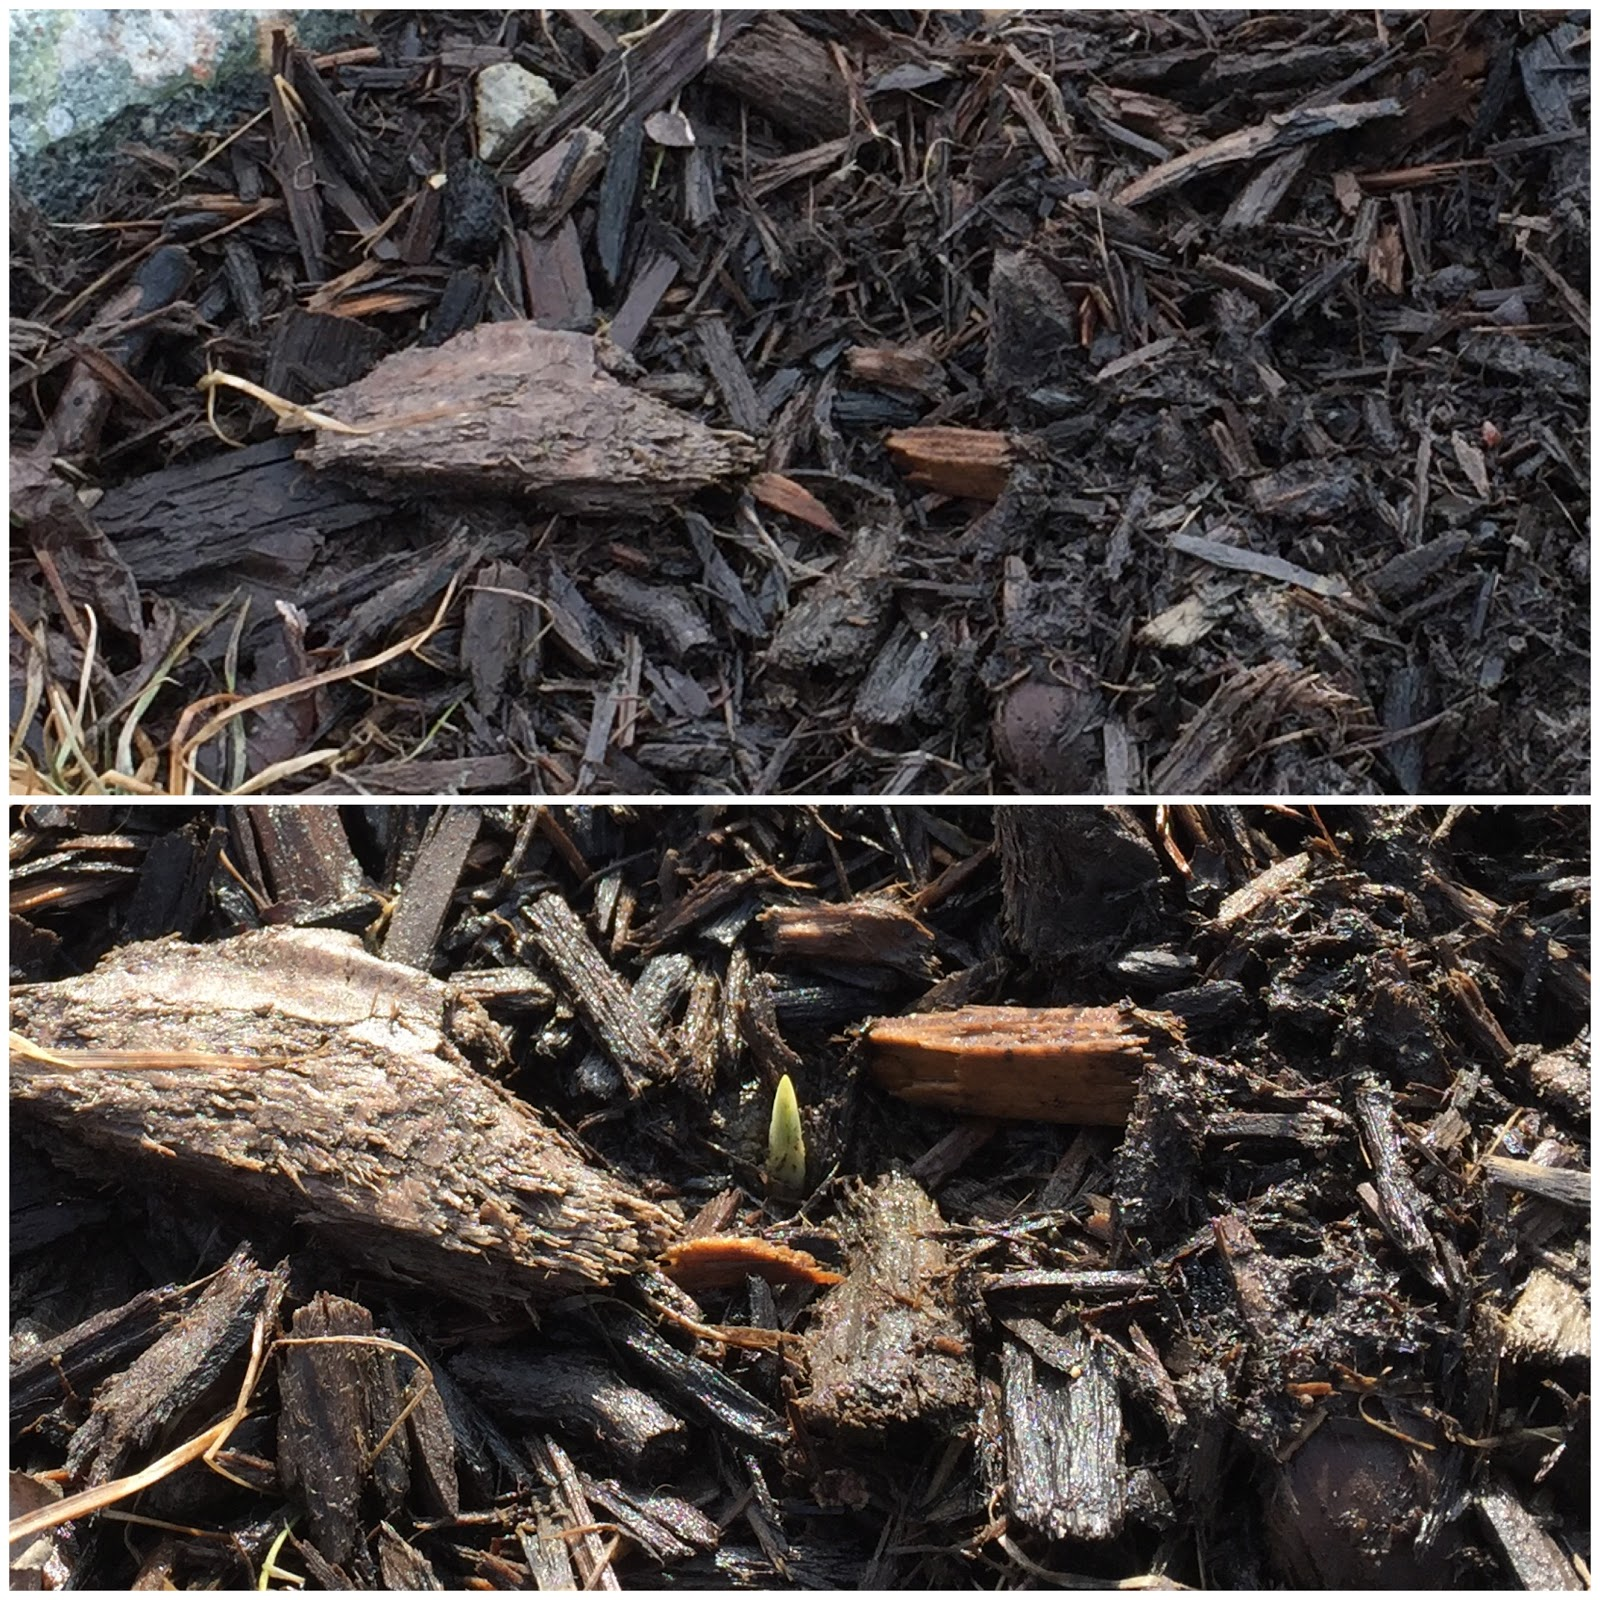 crocus shoot emerges before and after